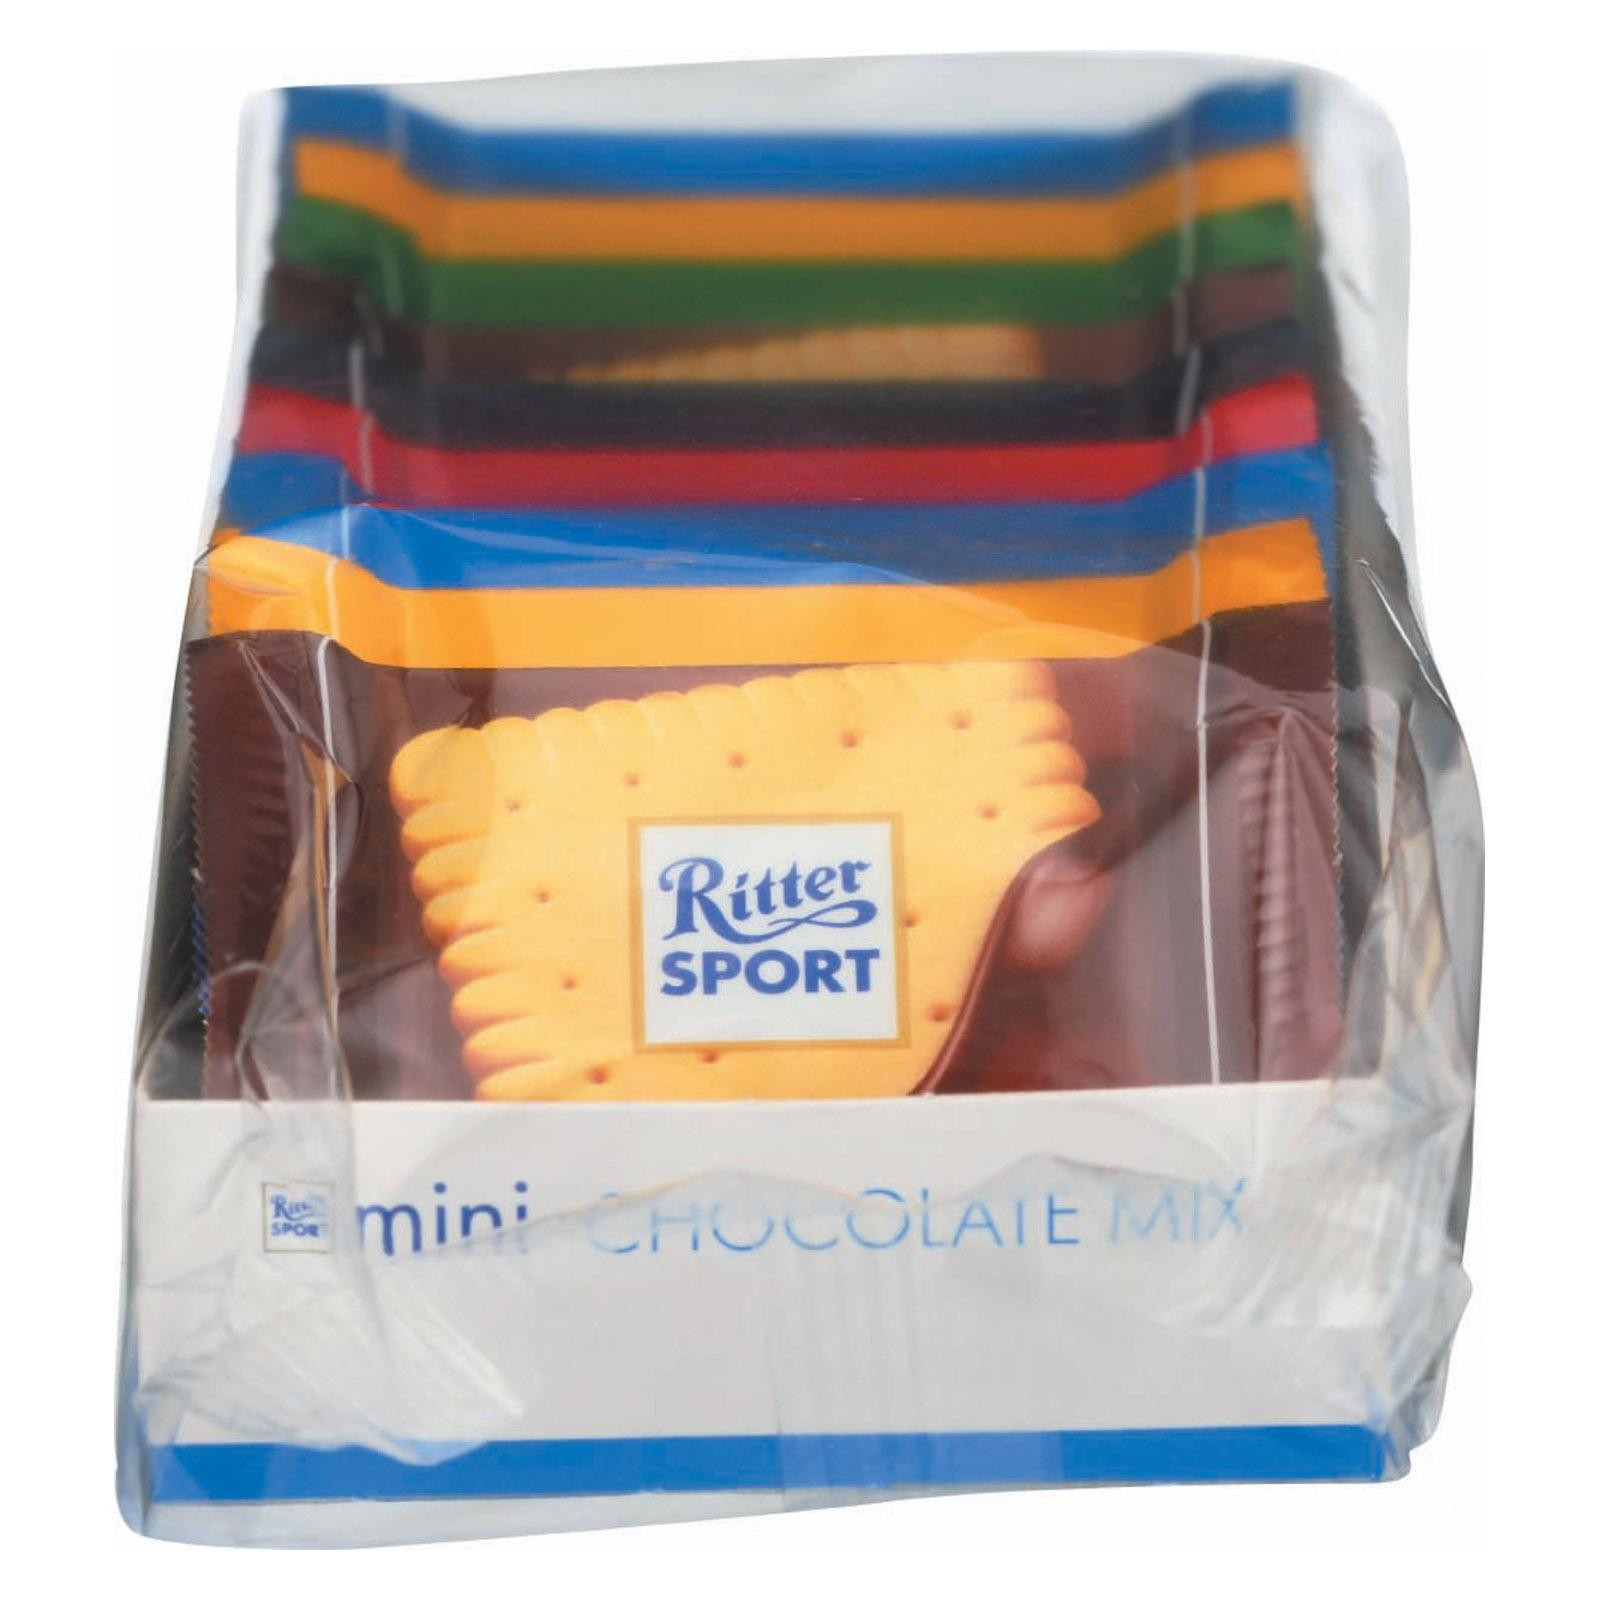 Ritter Sport Mini Chocolate Mix - 9 Pc - pack of 12 - 5.3 Oz